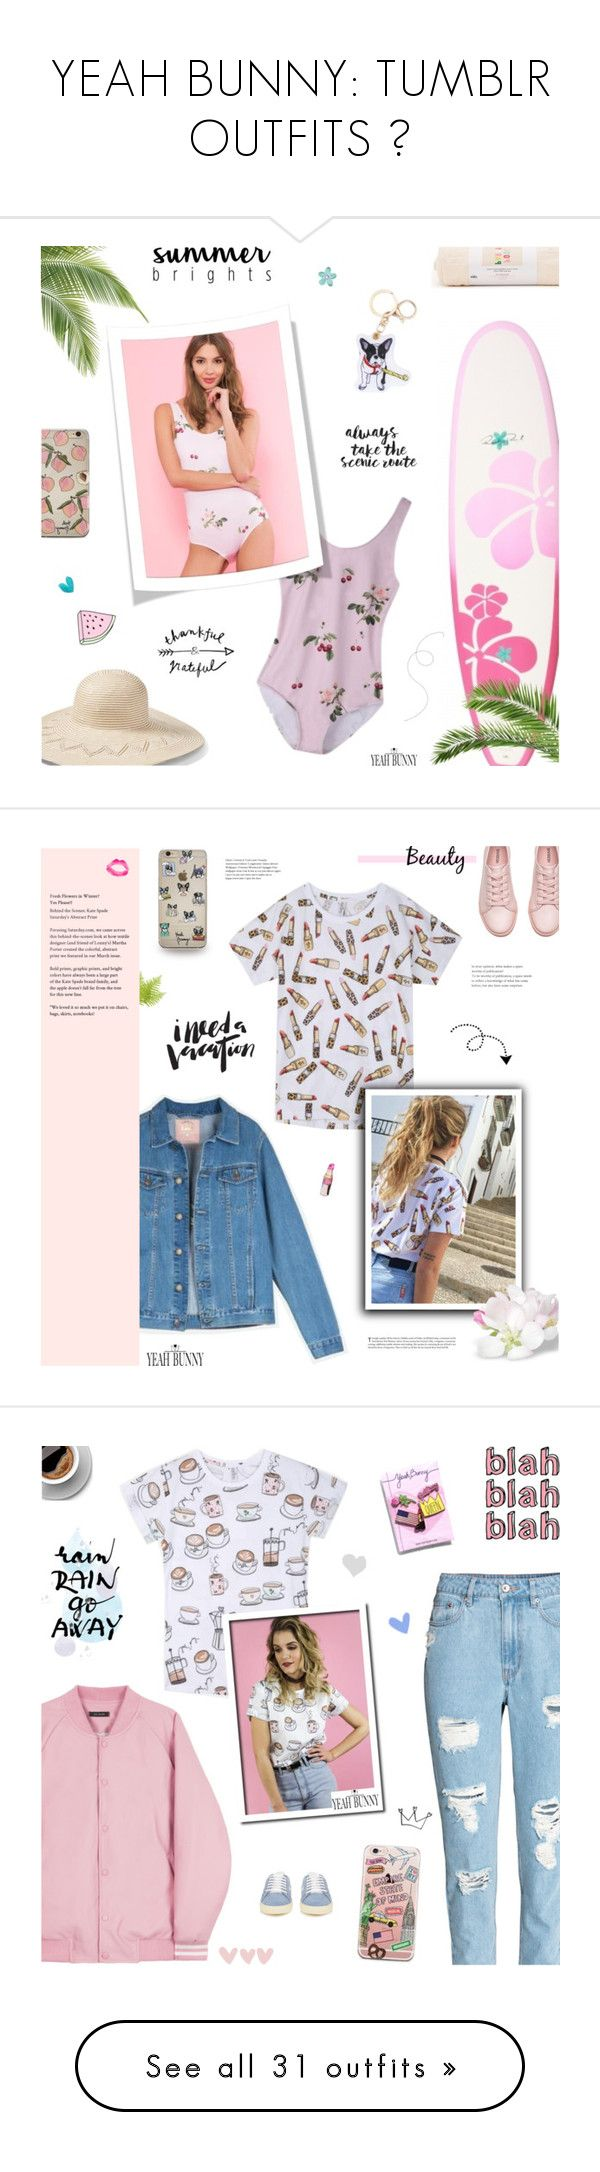 """YEAH BUNNY: TUMBLR OUTFITS 🐰"" by paradiselemonade ❤ liked on Polyvore featuring BB Dakota, ban.do, Hinge, Yeah Bunny, tumblr, YeahBunny, Gucci, ZAK, GUSTA and Topshop"